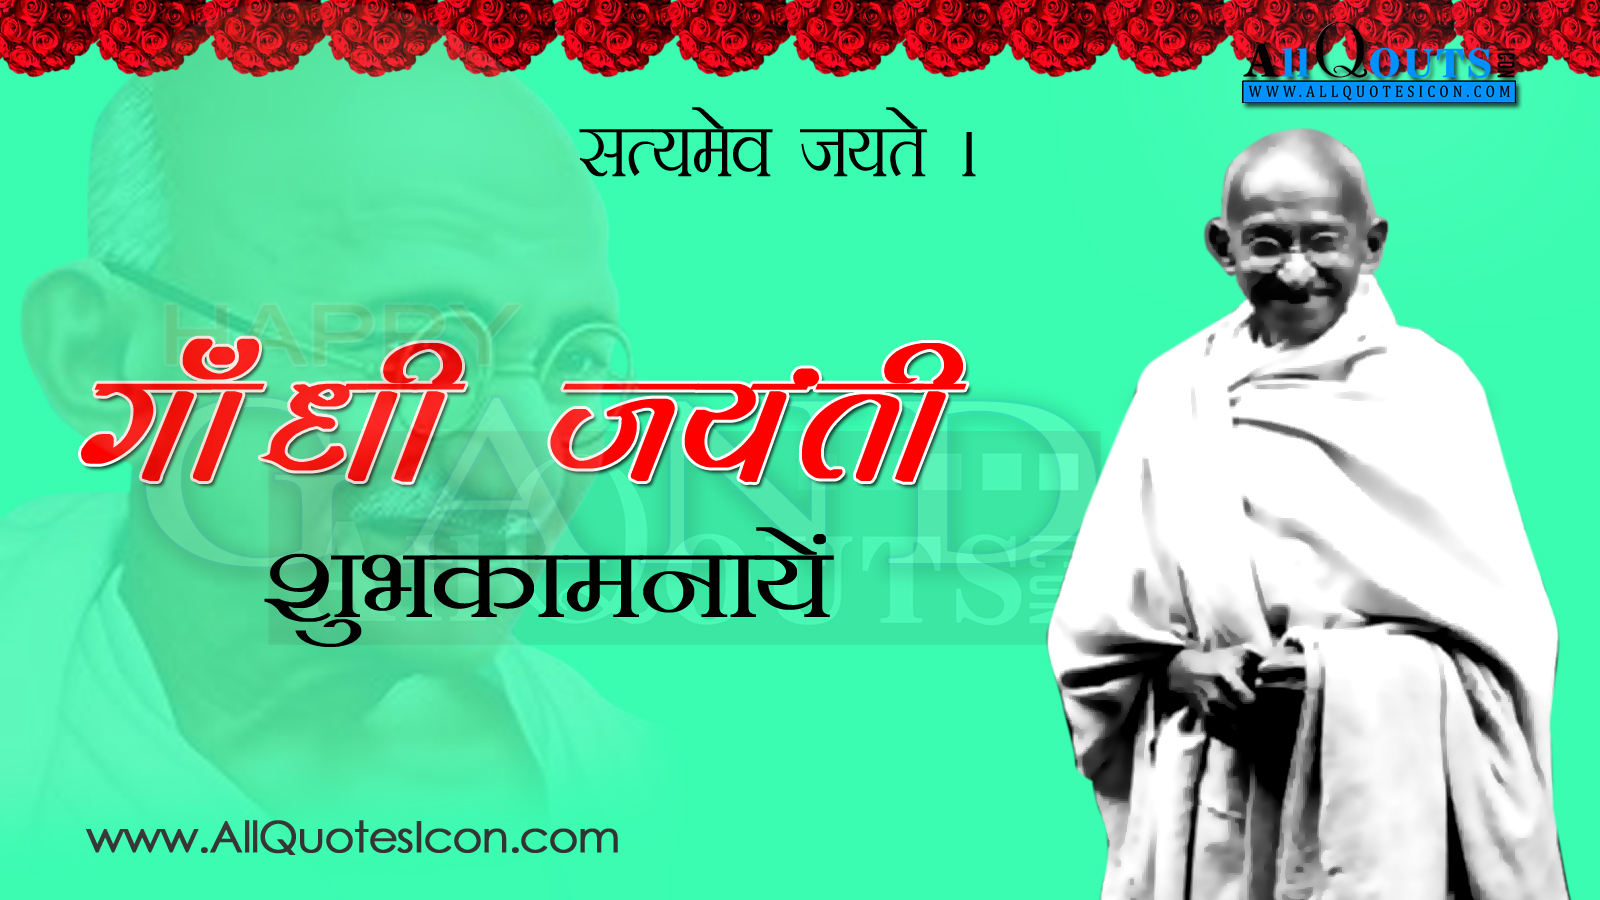 Best Wishes And Pictures About Happy Gandhi Jayanthi Greetings Hindi